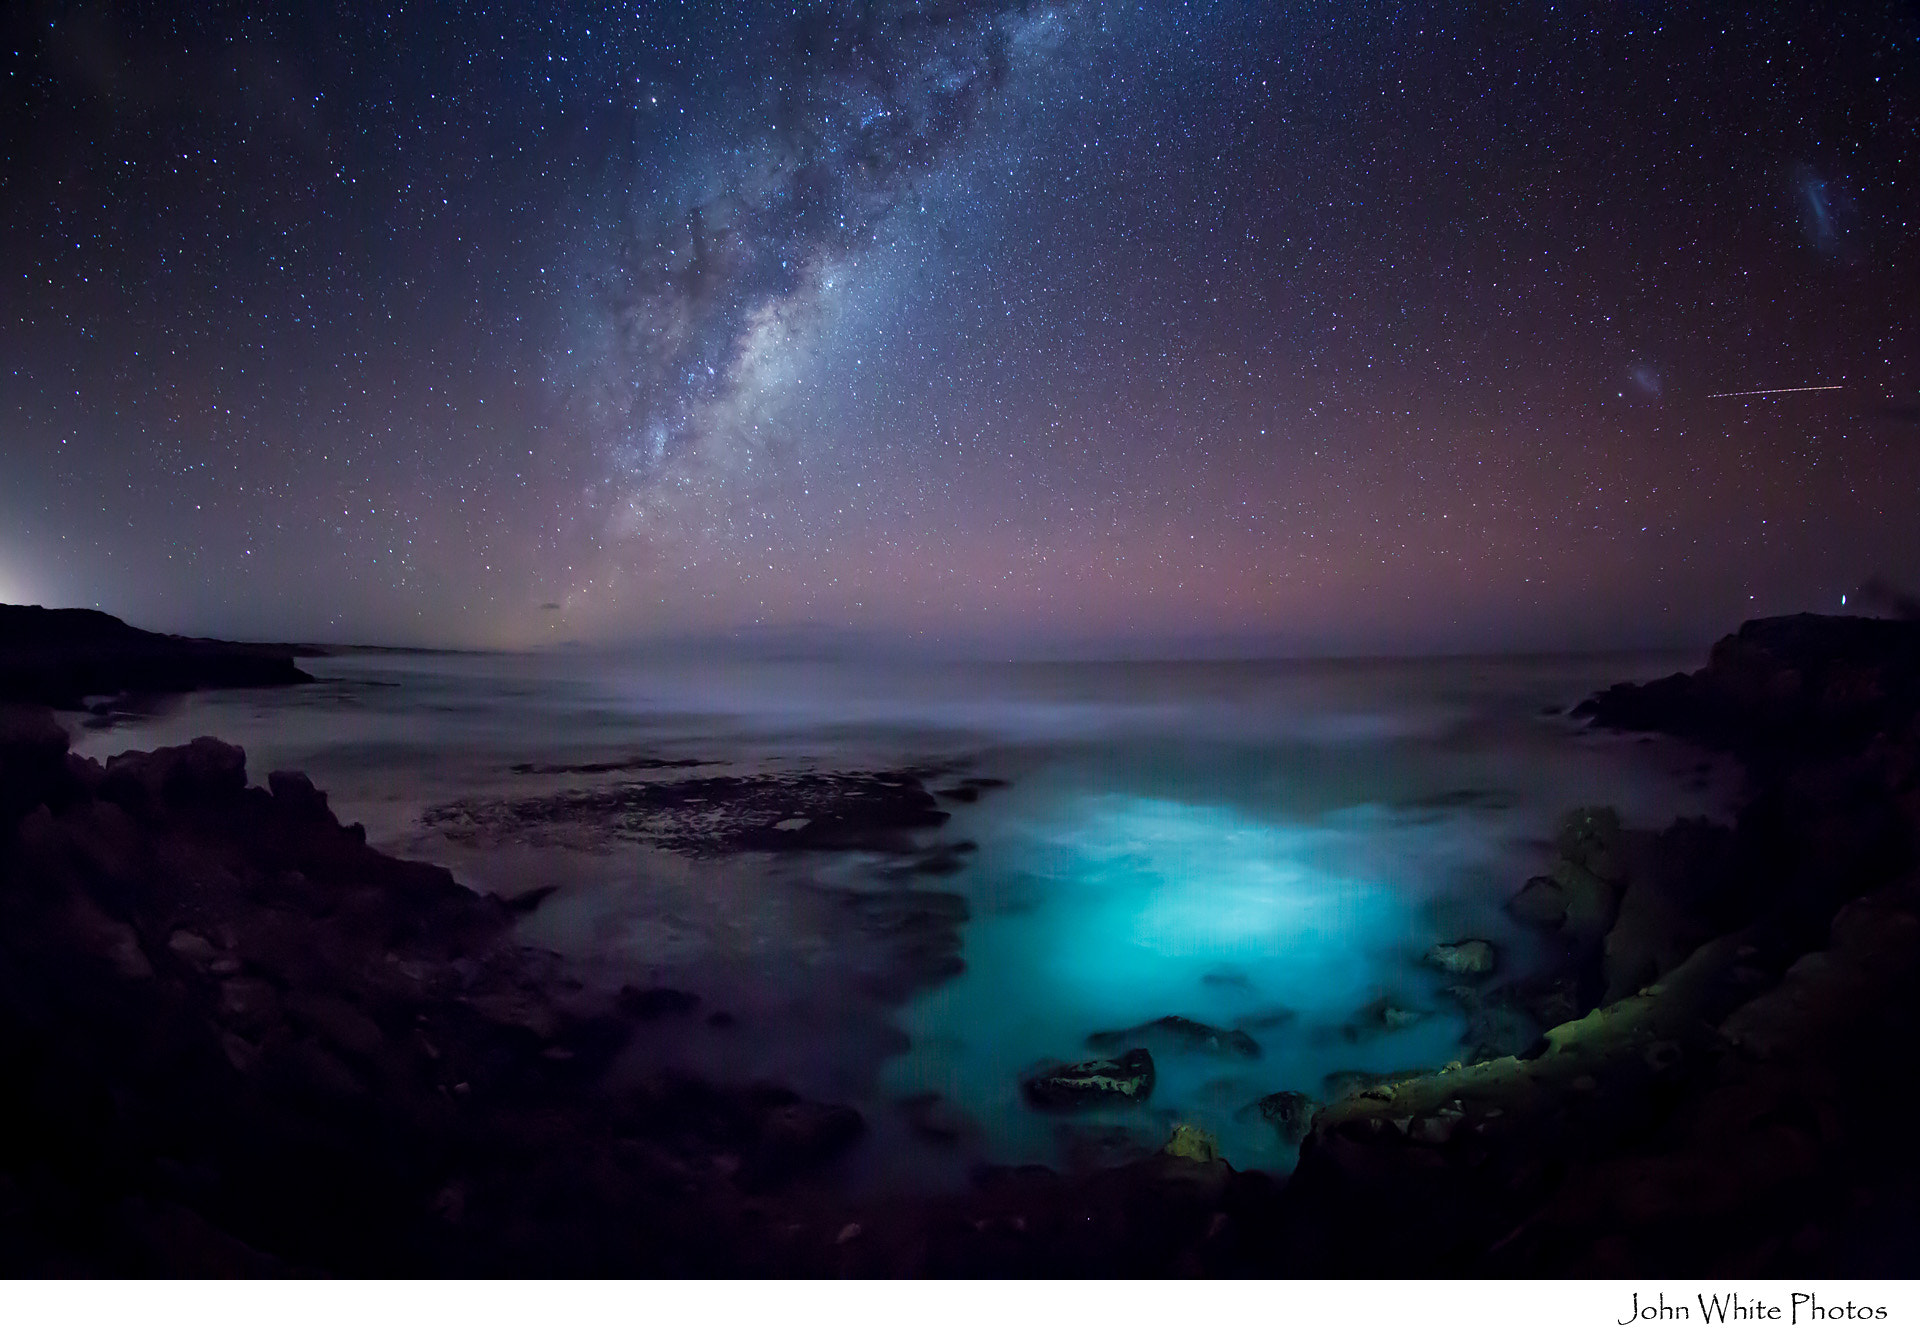 Photograph Millky Way over Southern Ocean by John White on 500px